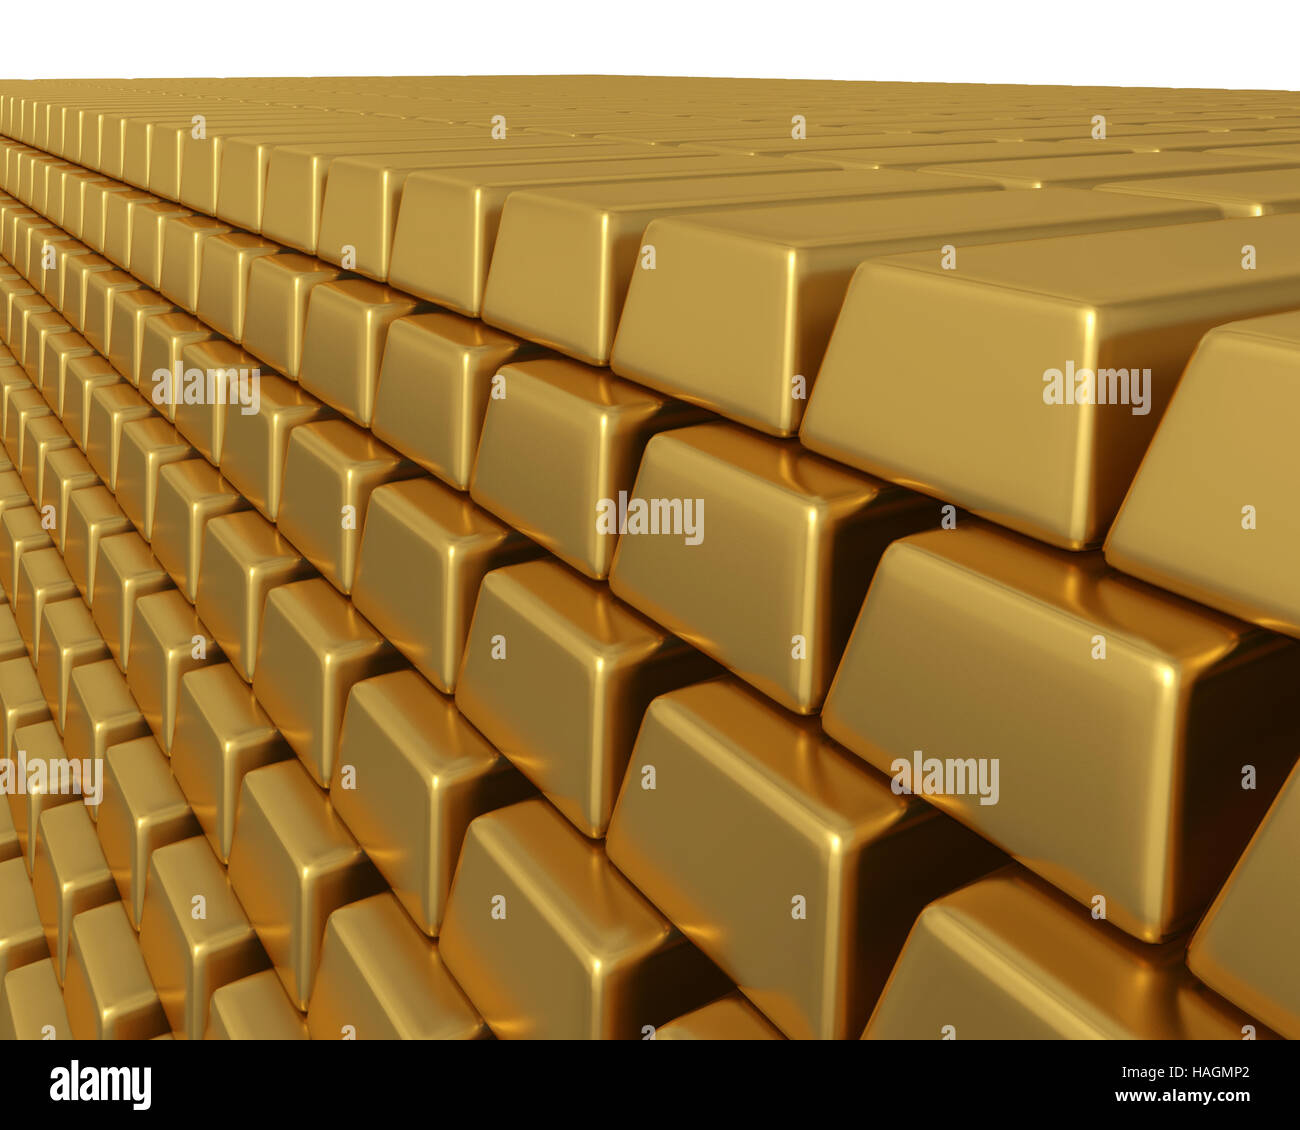 3D illustration of thousands of gold bullion bars piled high, representing enormous weath or assets. - Stock Image